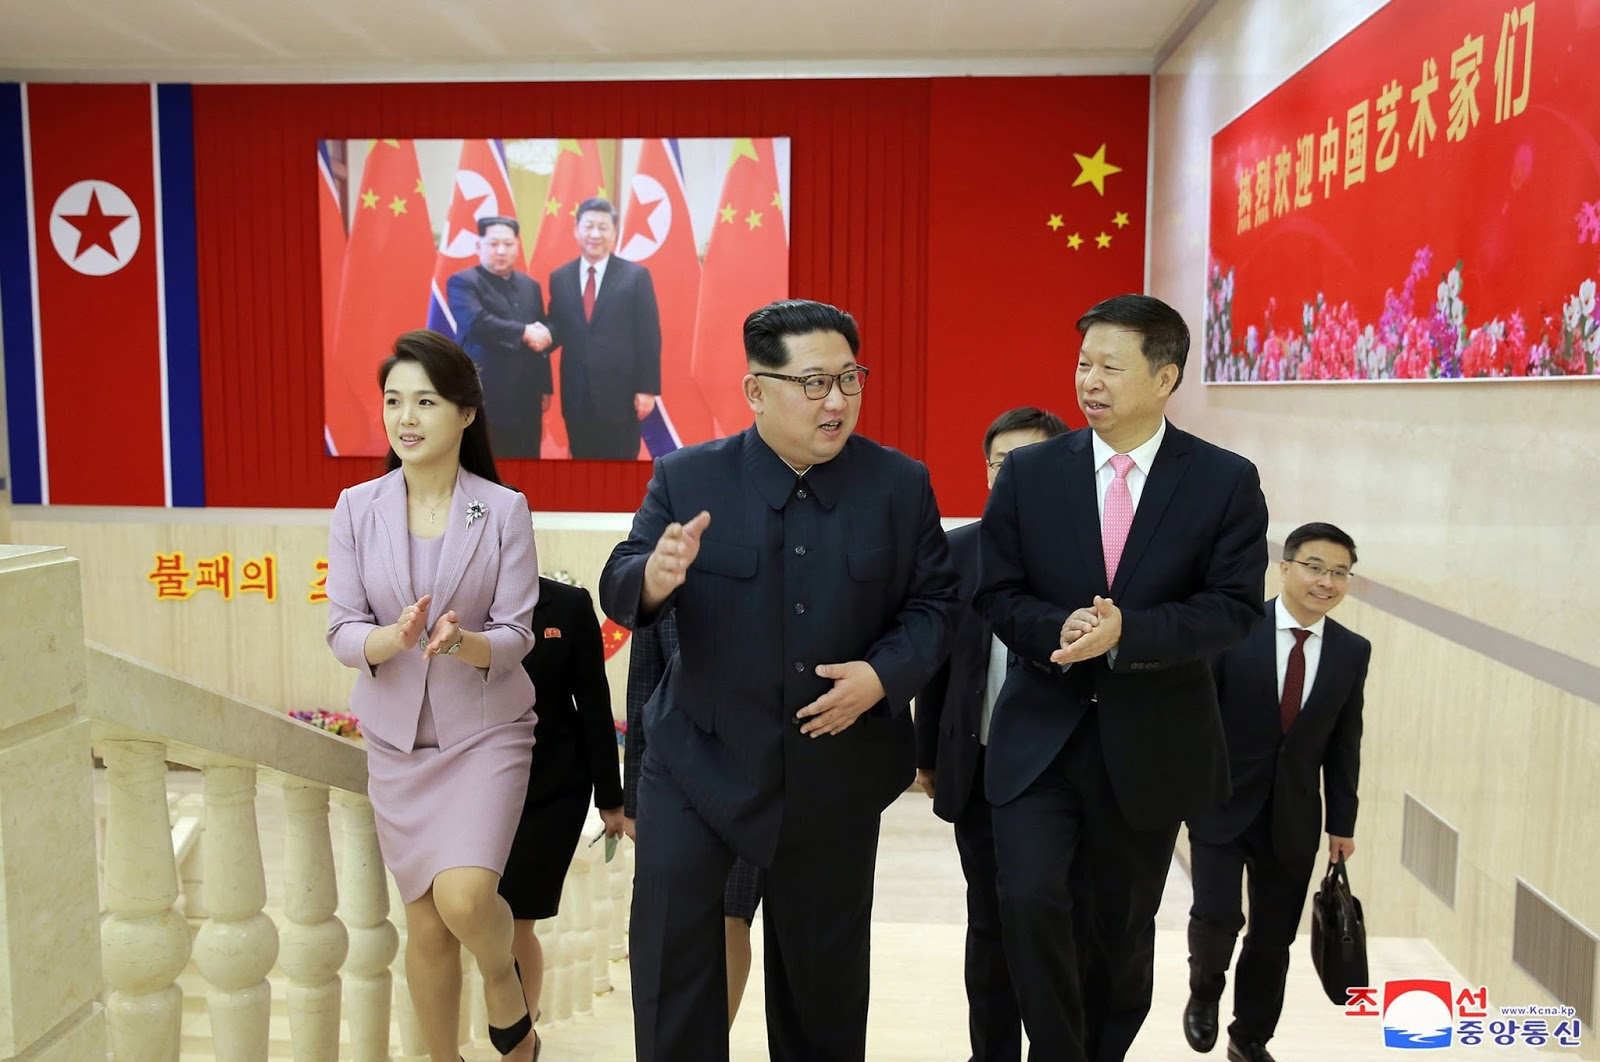 According to the Yonhap News Agency, Kim Jong-un said he did not need test shots and agreed to close the nuclear test facility.